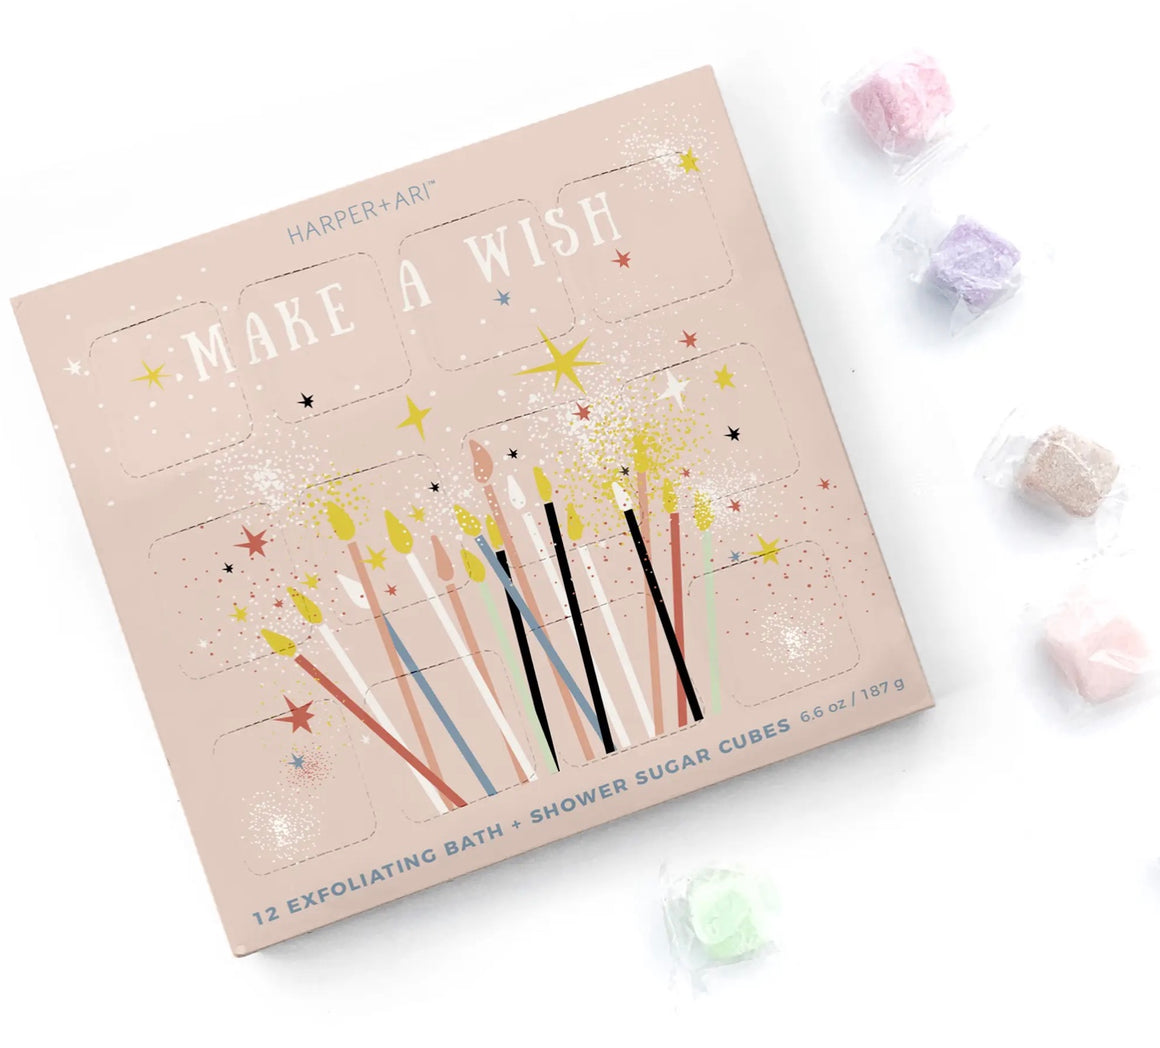 Harper & Arie- Make A Wish-Gift Box Set